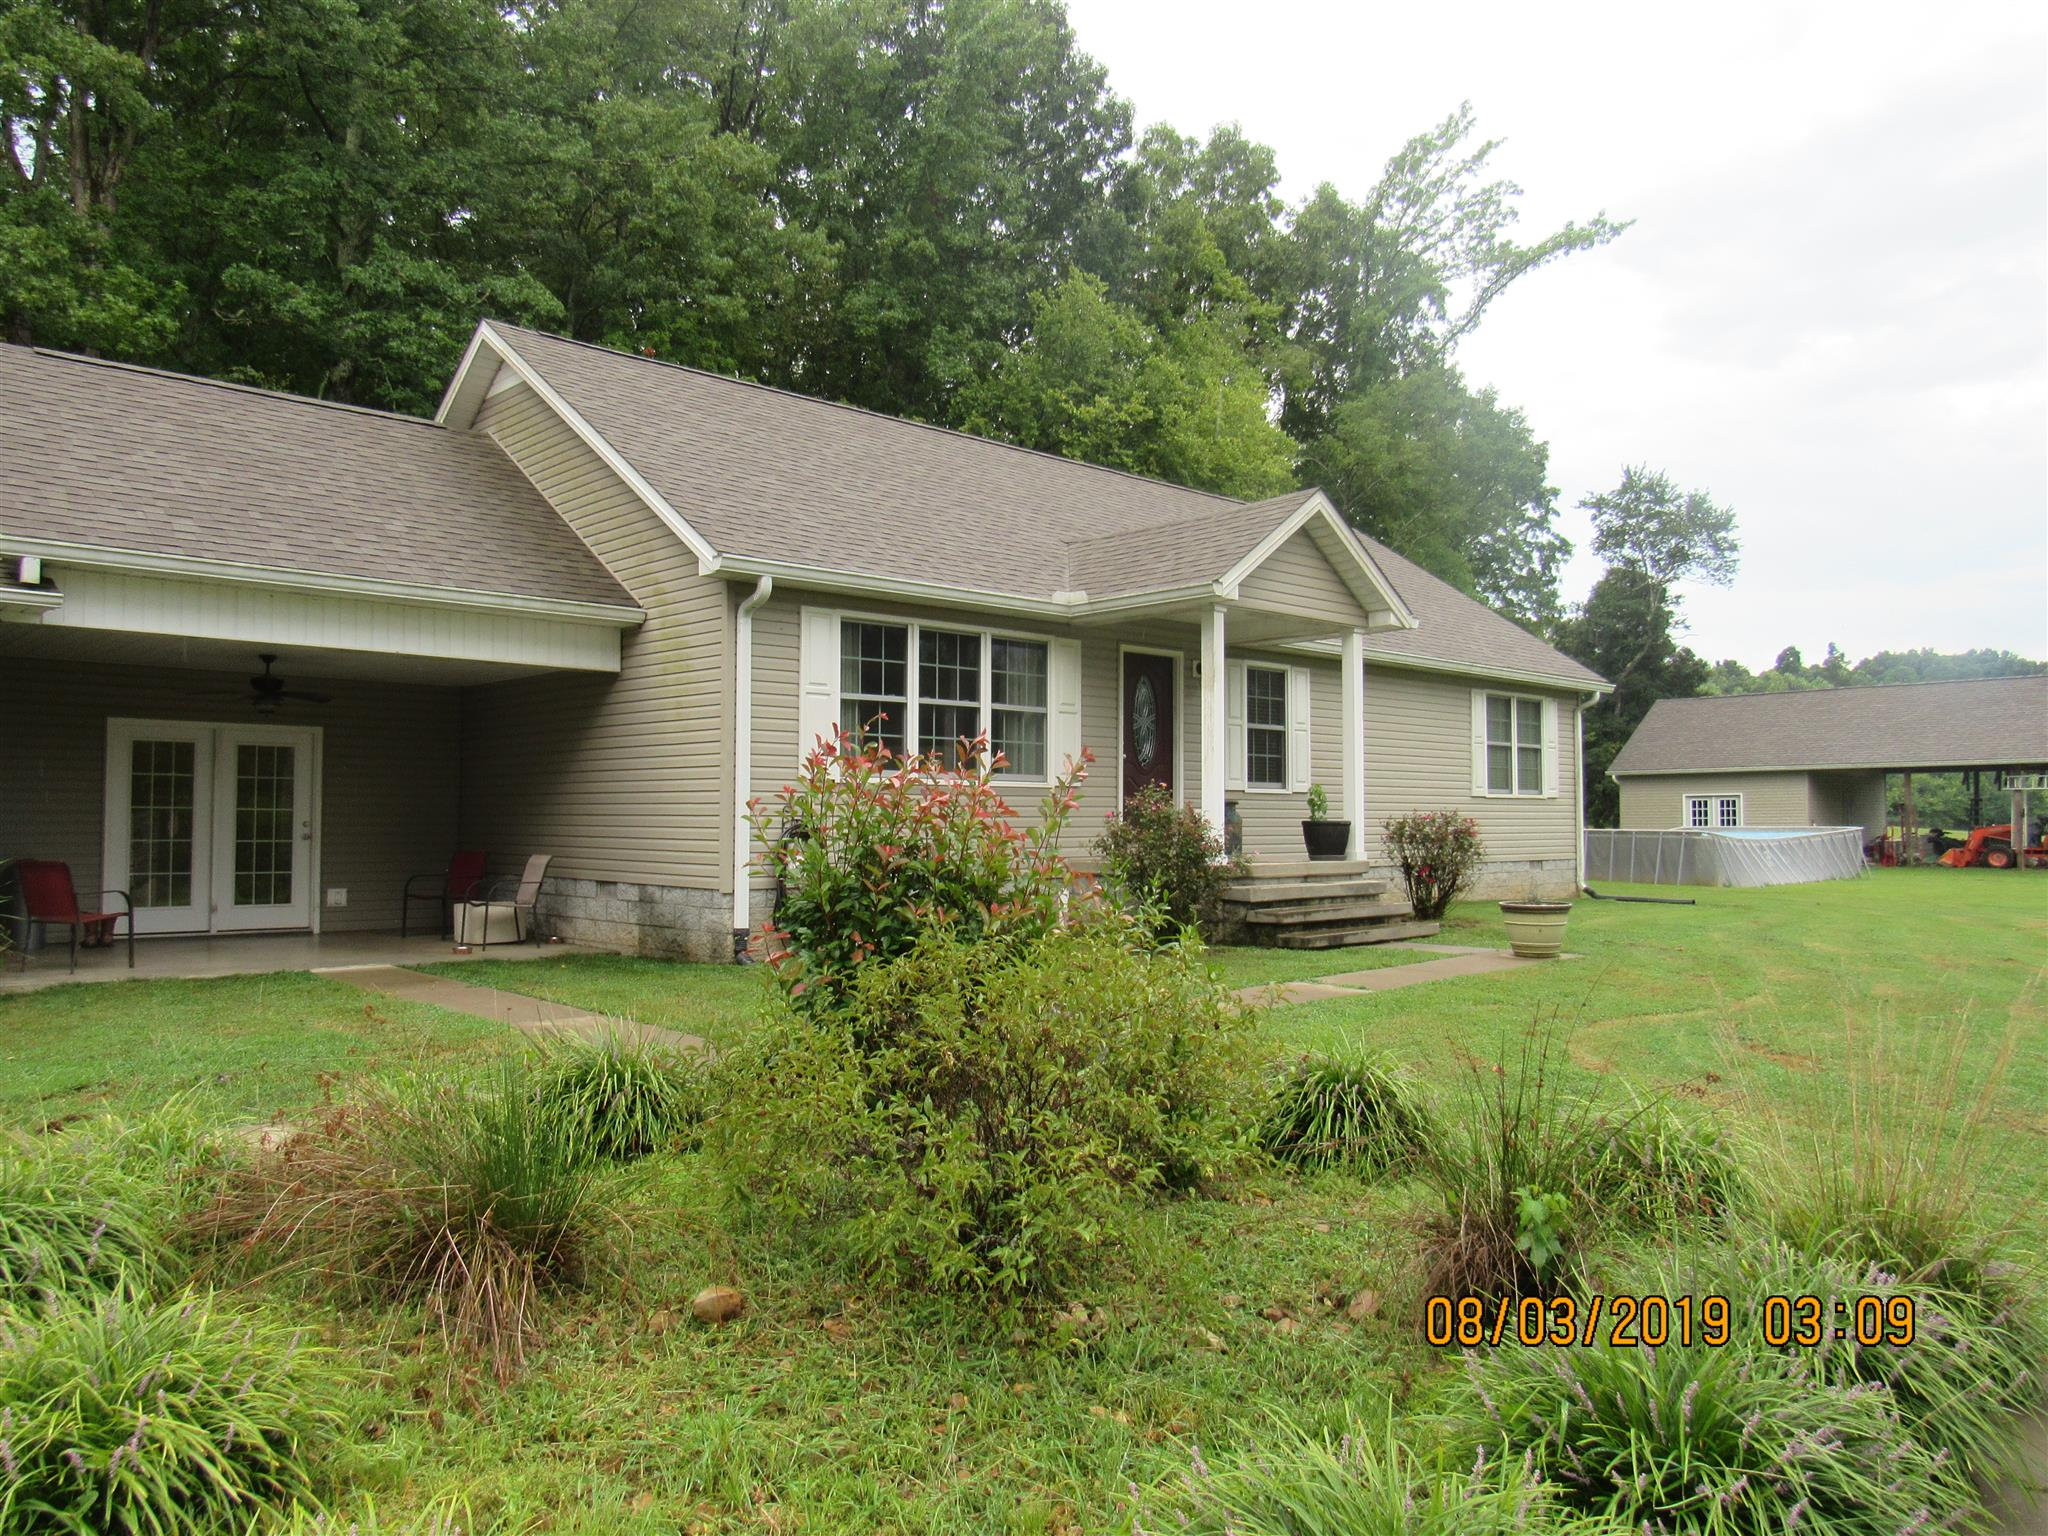 2552 Bold Springs Rd, MC EWEN, TN 37101 - MC EWEN, TN real estate listing